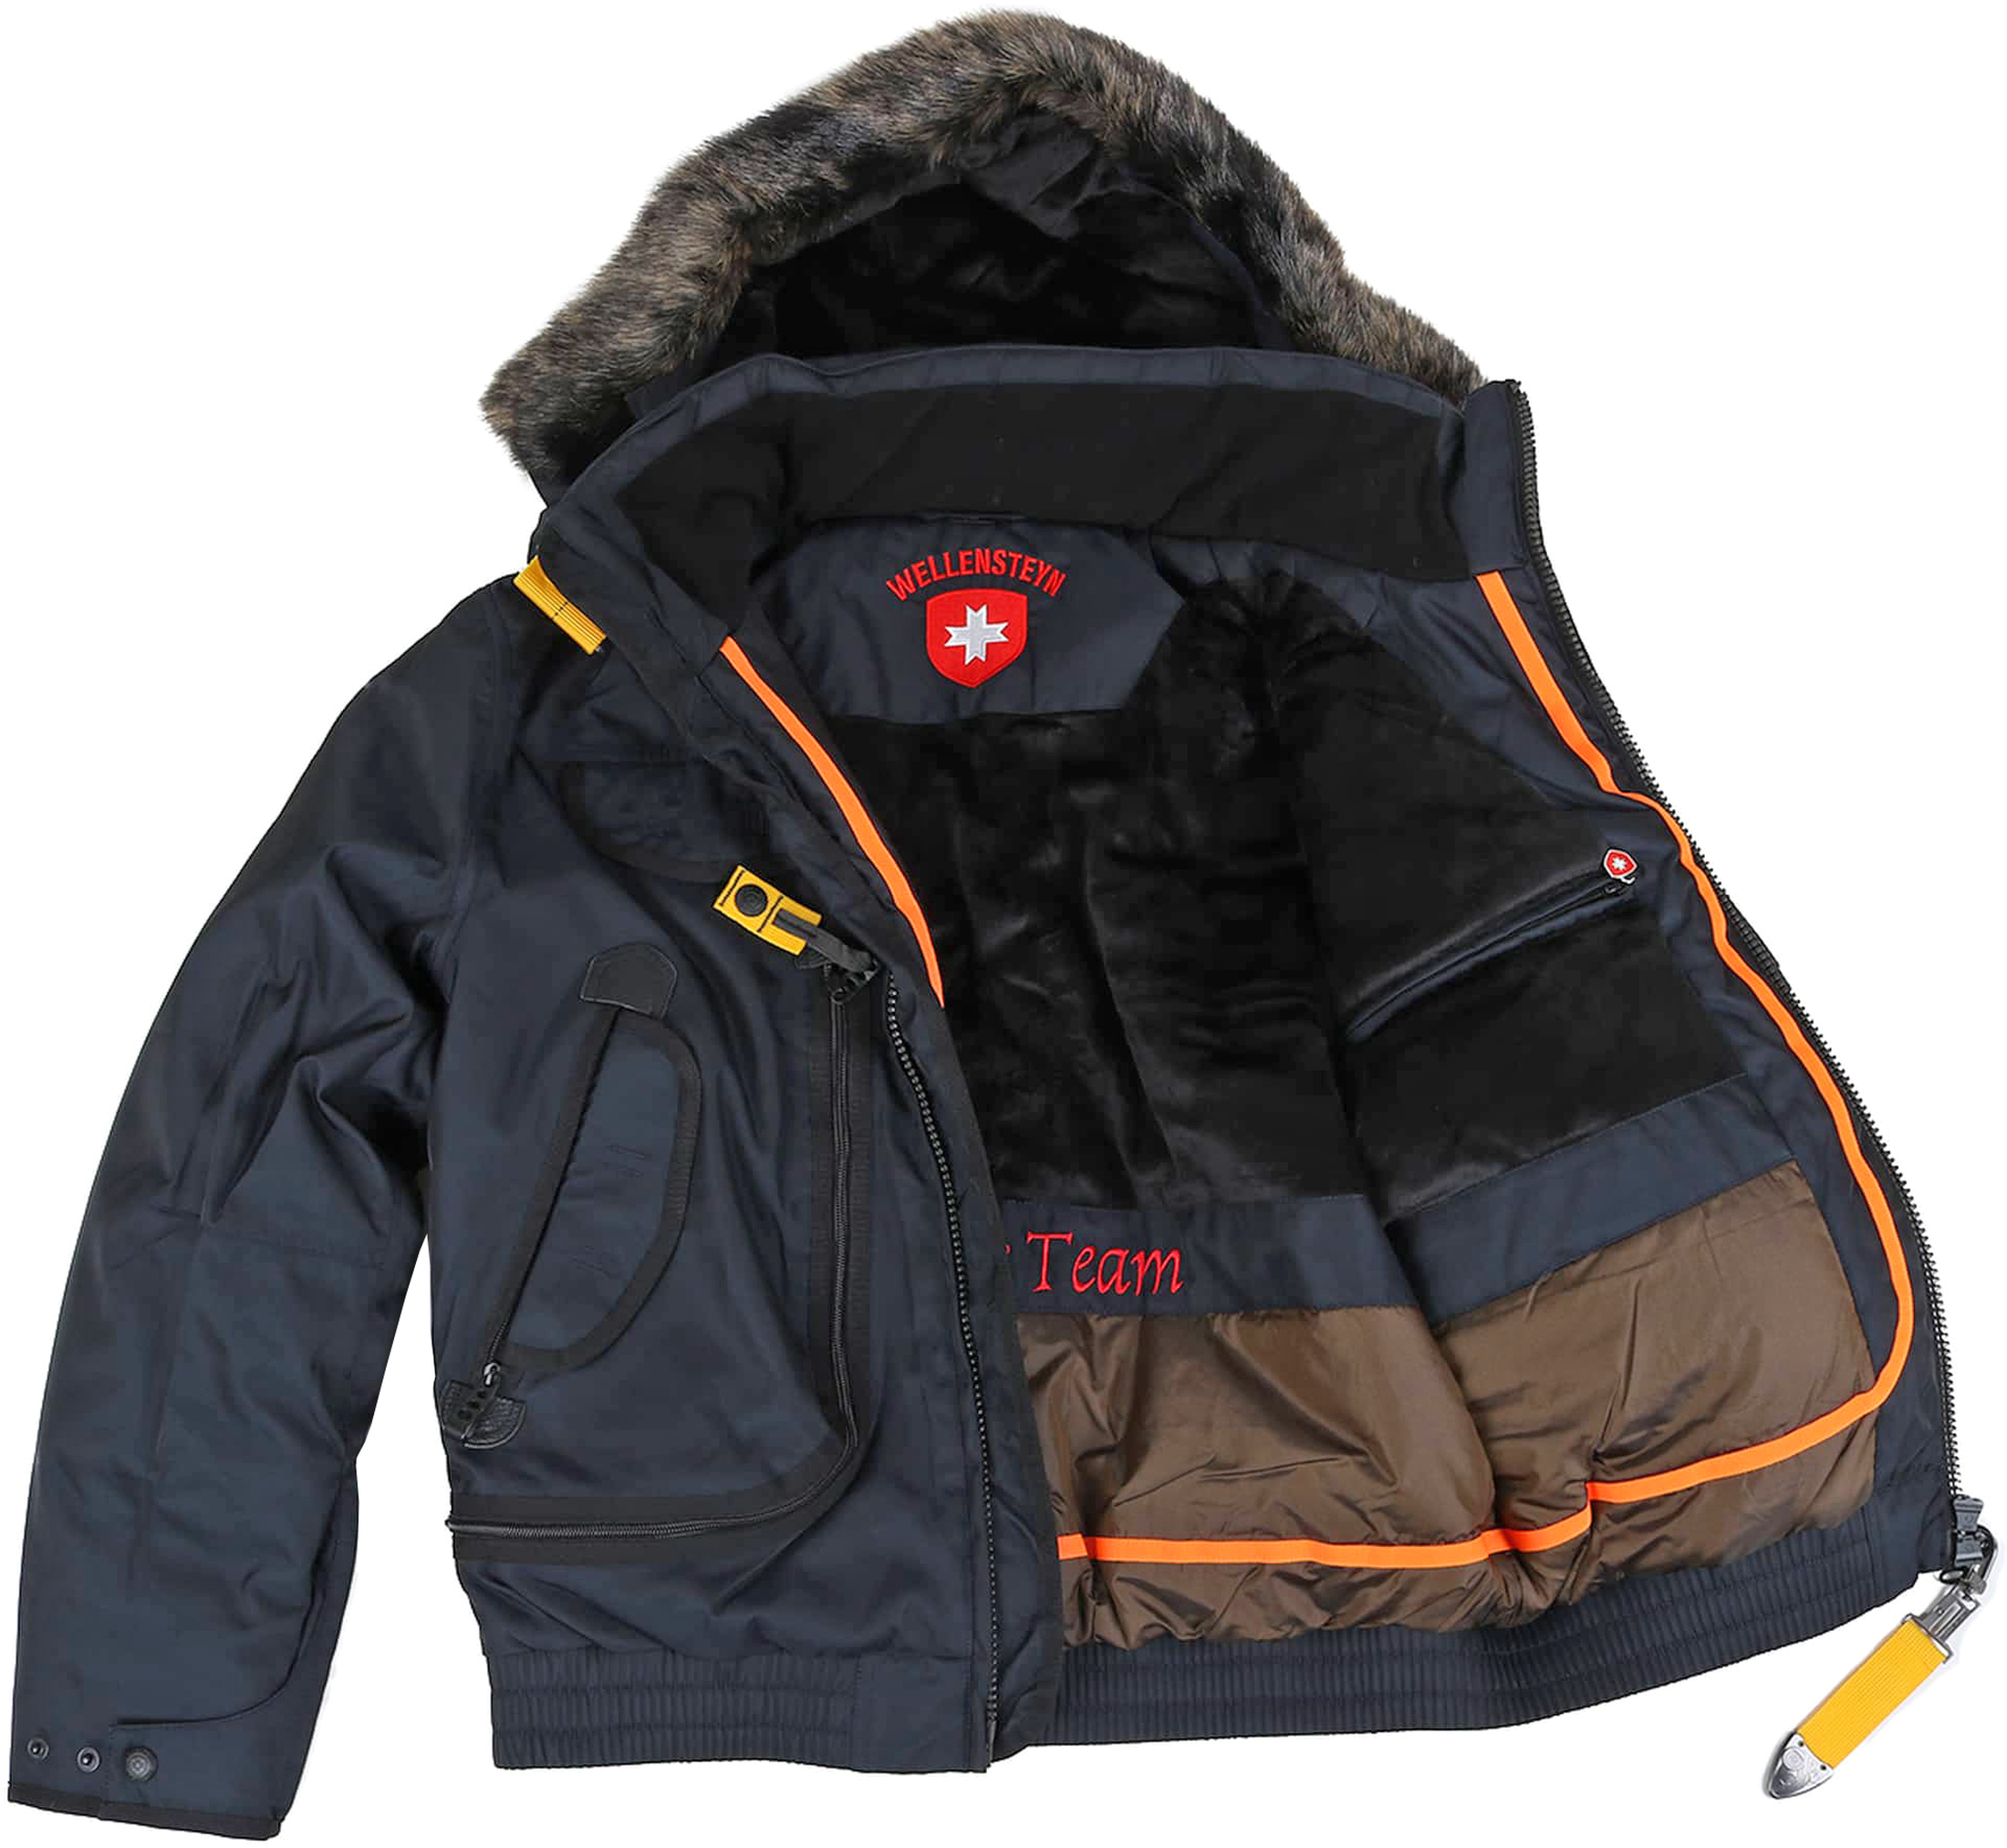 Wellensteyn Rescue Jacket Dunkelblau foto 6